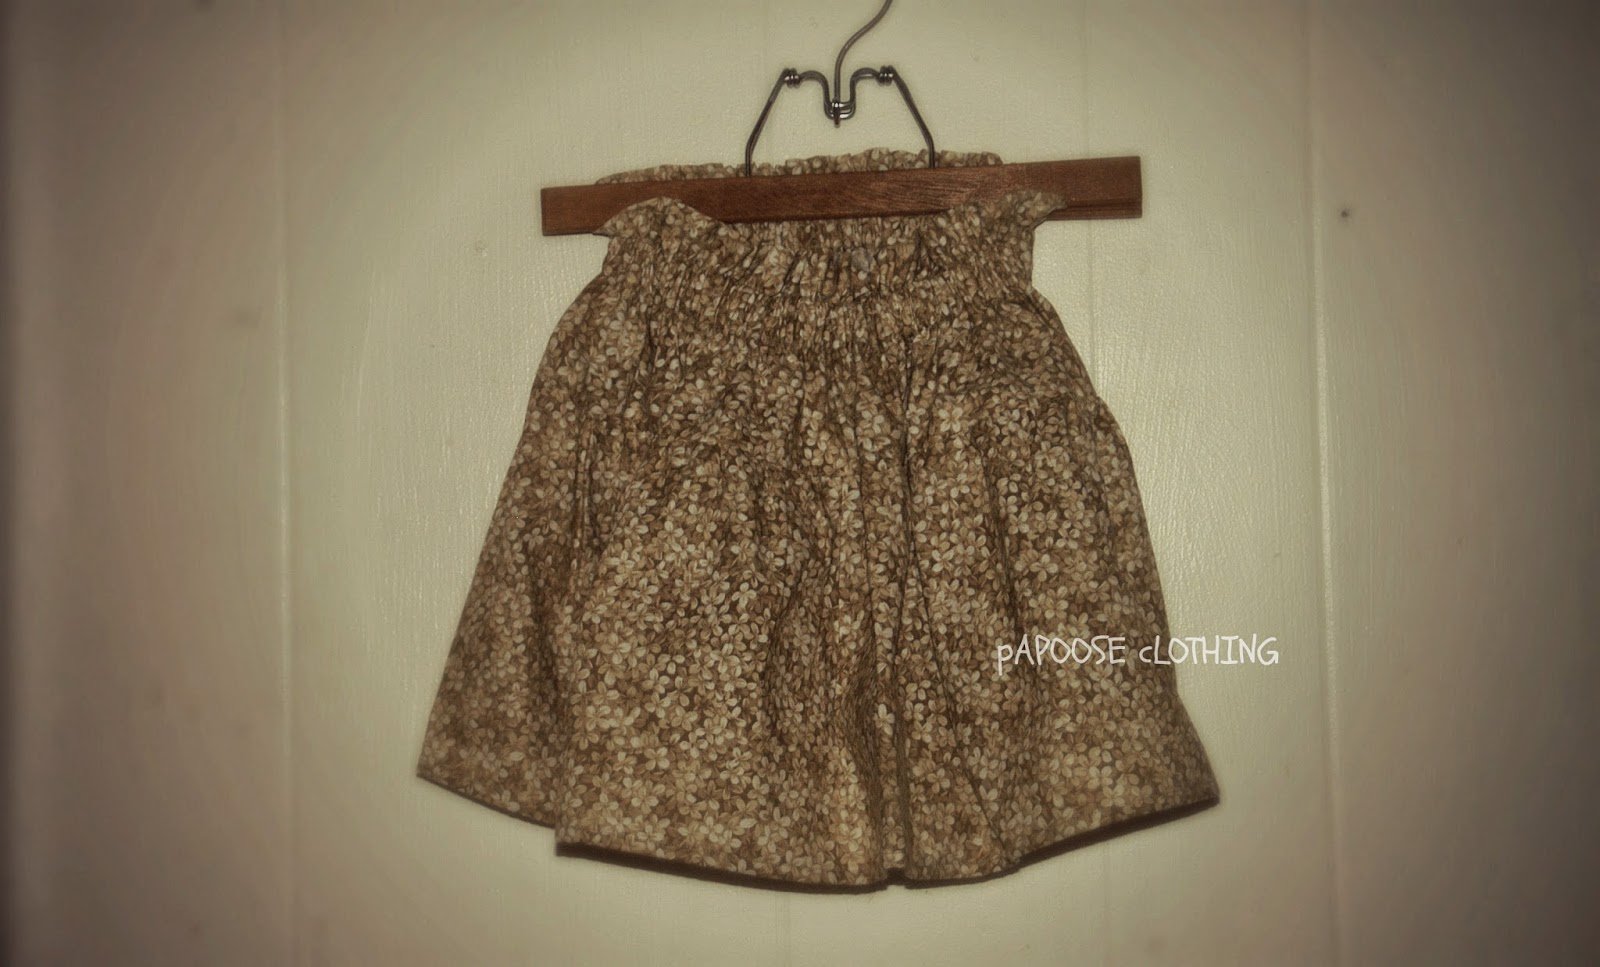 http://www.papooseclothing.com/store/p34/Caffe_Crema_Drop_Waist_Ruffle_Top_Skirt.html